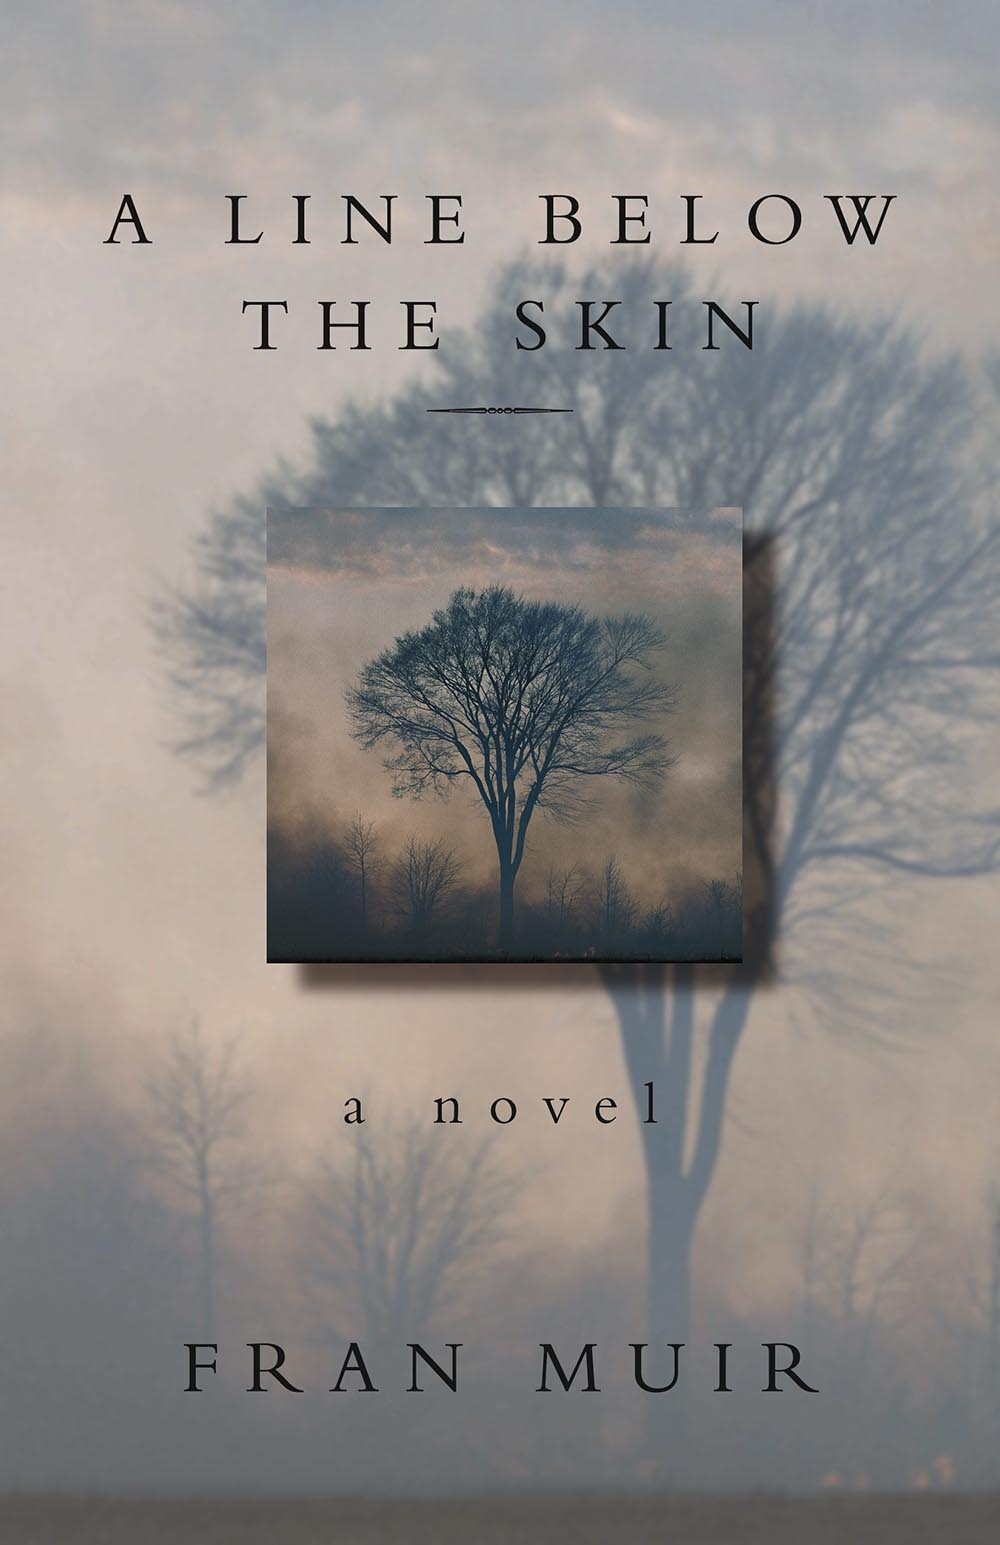 A Line Below the Skin by Fran Muir